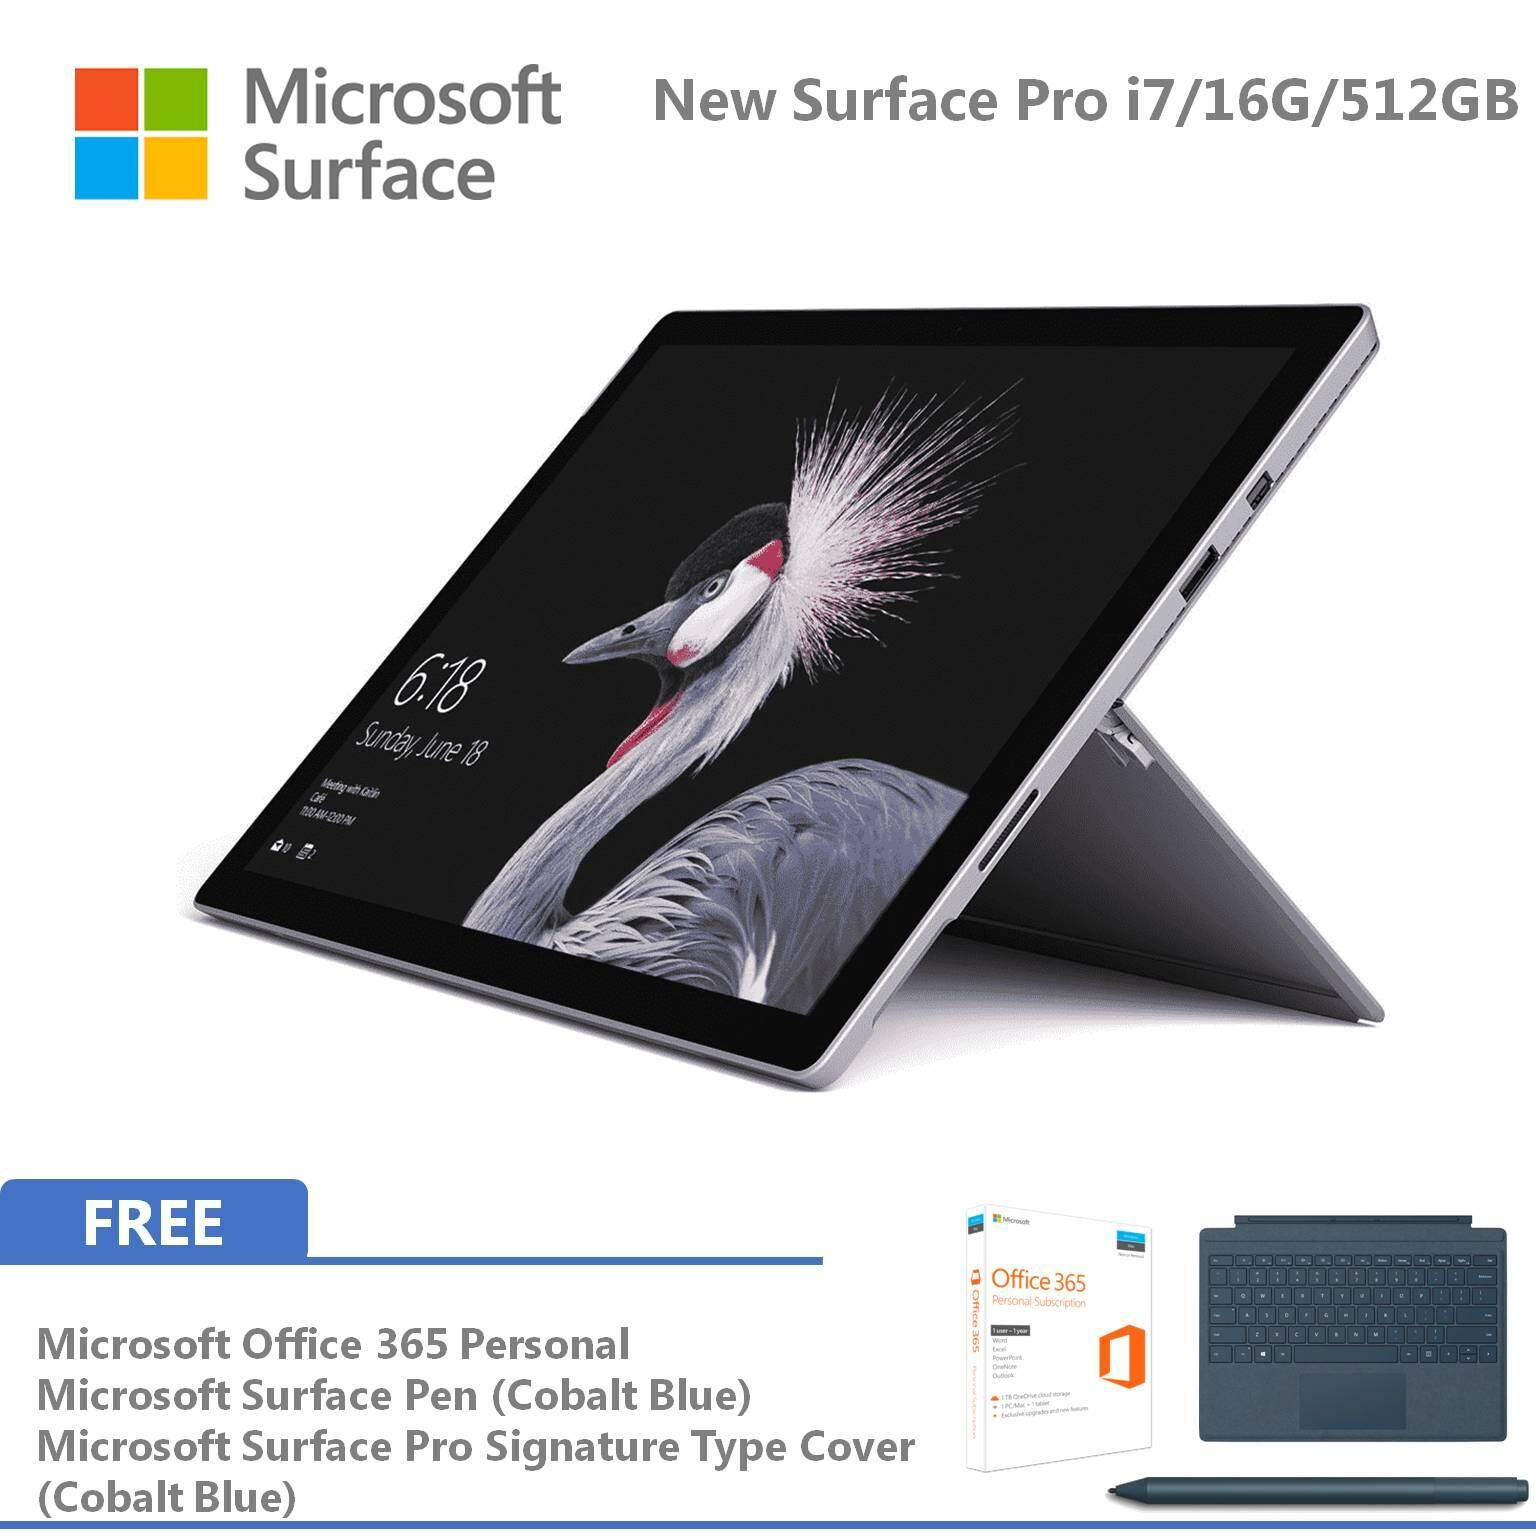 NEW Microsoft Surface Pro - i7 / 512GB / 16GB RAM + Free Signature Pro Type Cover, Surface Pen, Office 365 Malaysia